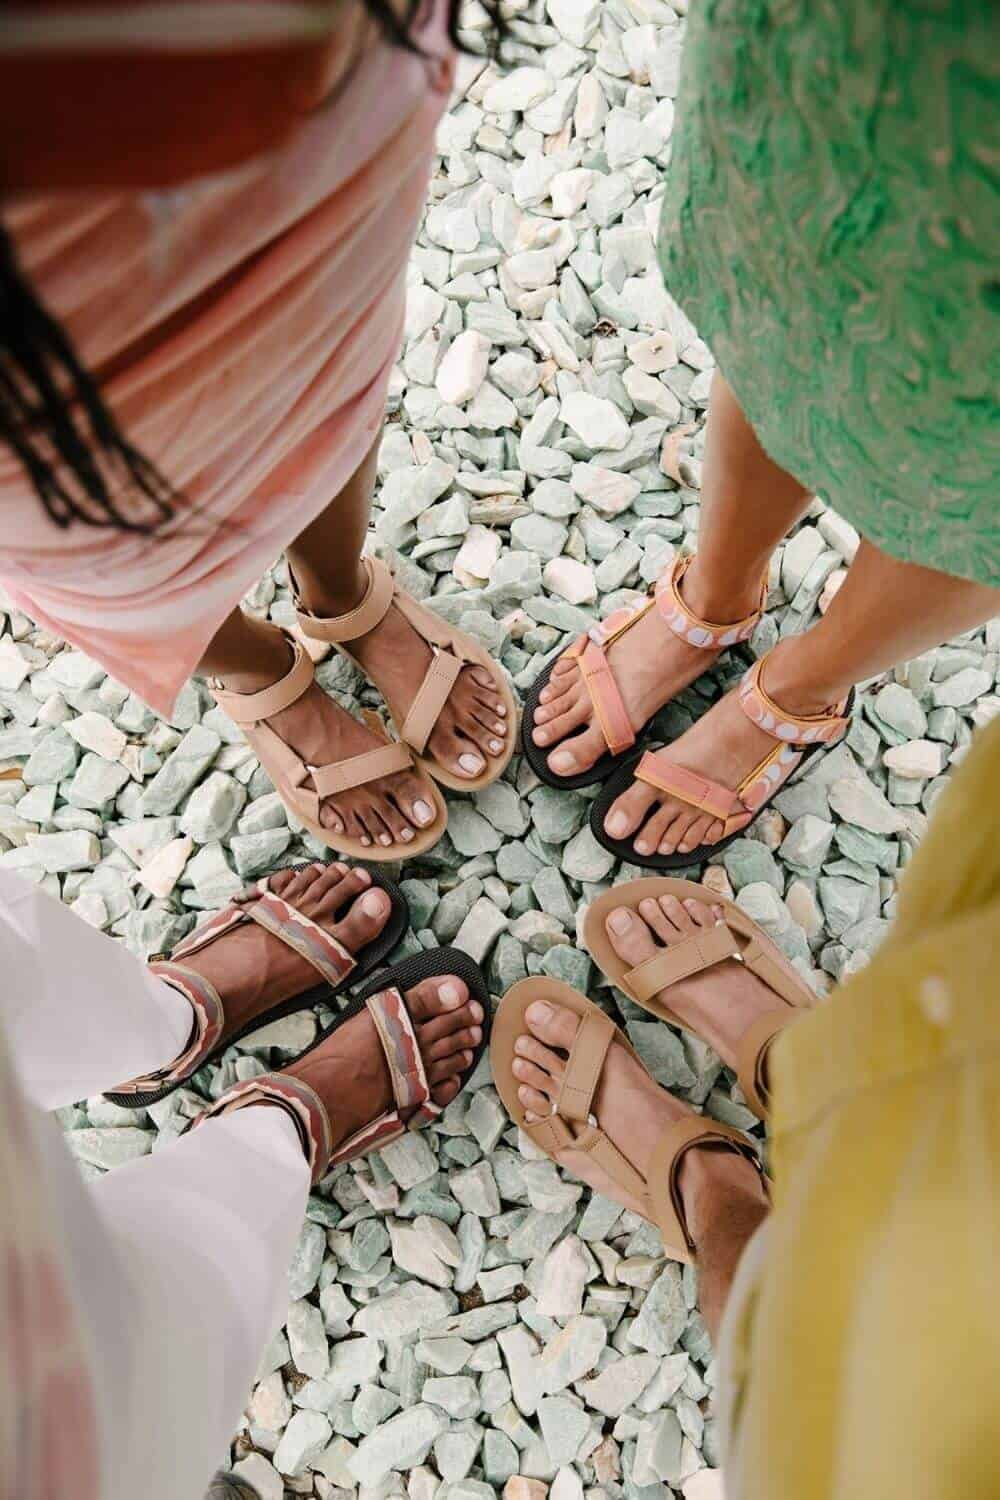 For summer sandals that also have a barely-there impact on animals and the planet, we've rounded up a list of some of our favorite vegan sandals. Image by @steveakation for Teva #veganshoes #sustainablejungle